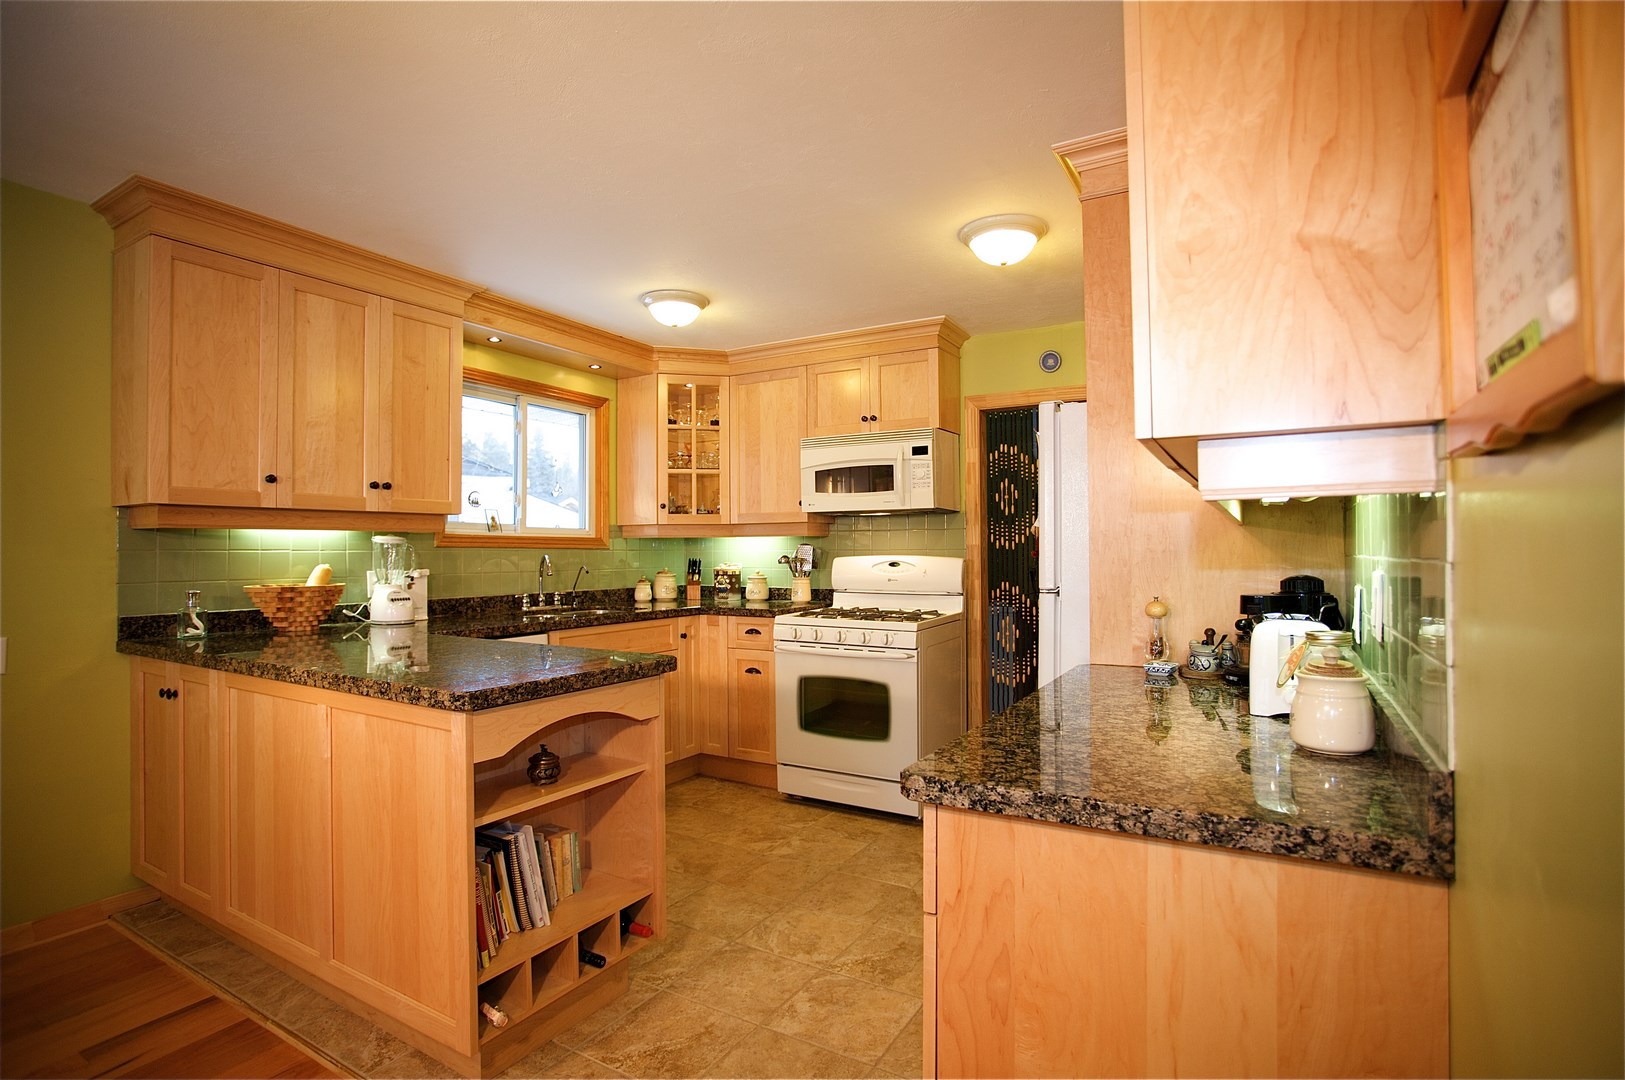 Natural Maple Kitchen Cabinets In Quaint Eclectic Home In